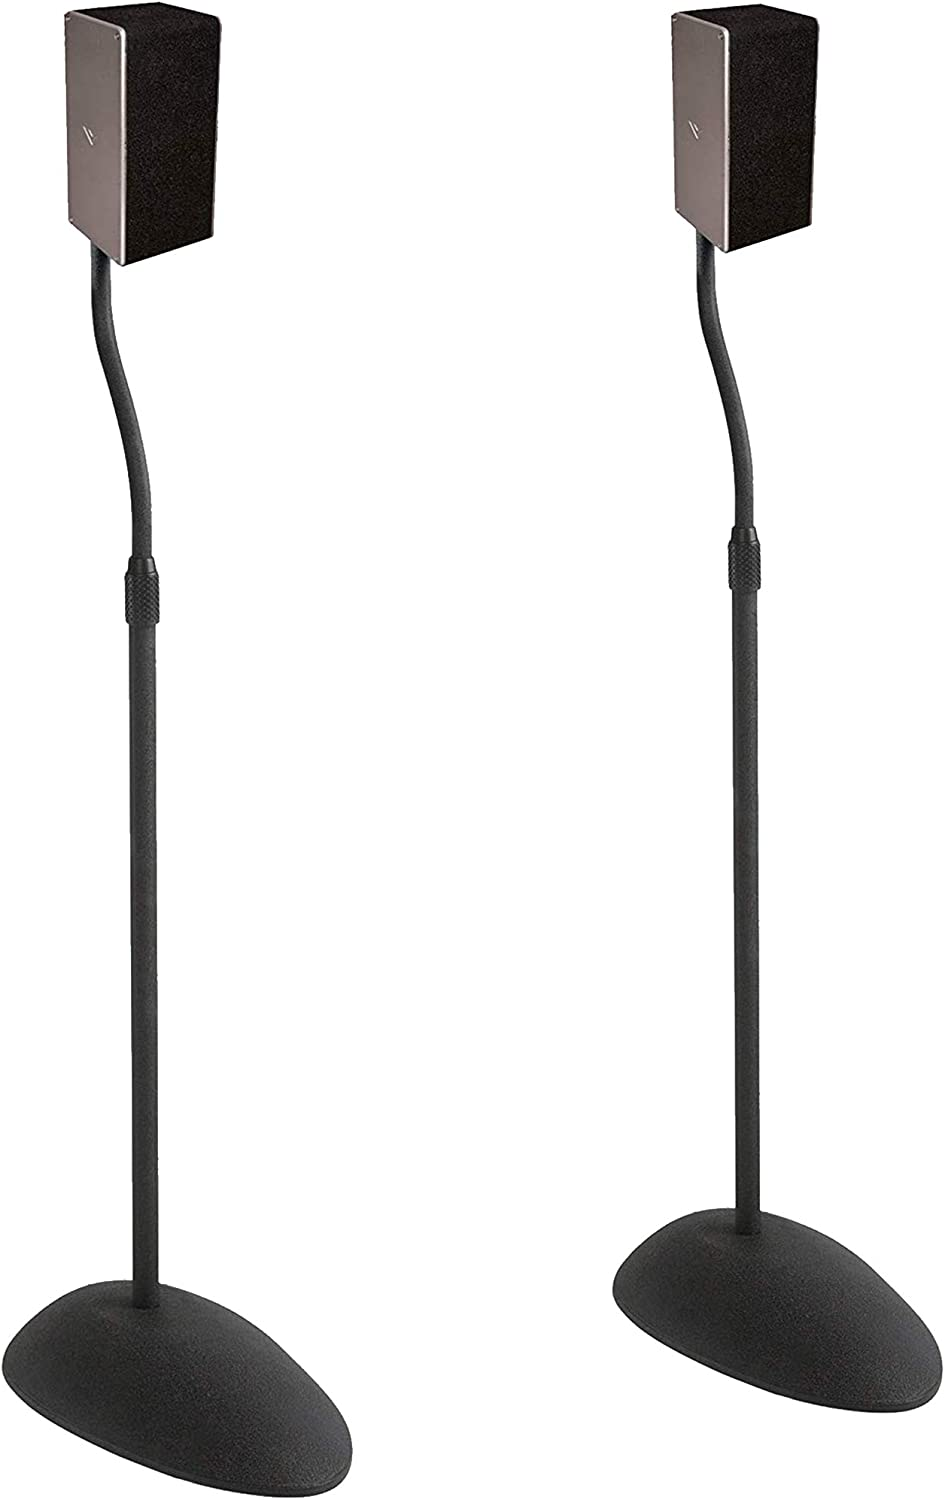 ECHOGEAR Adjustable Height Speaker Stands